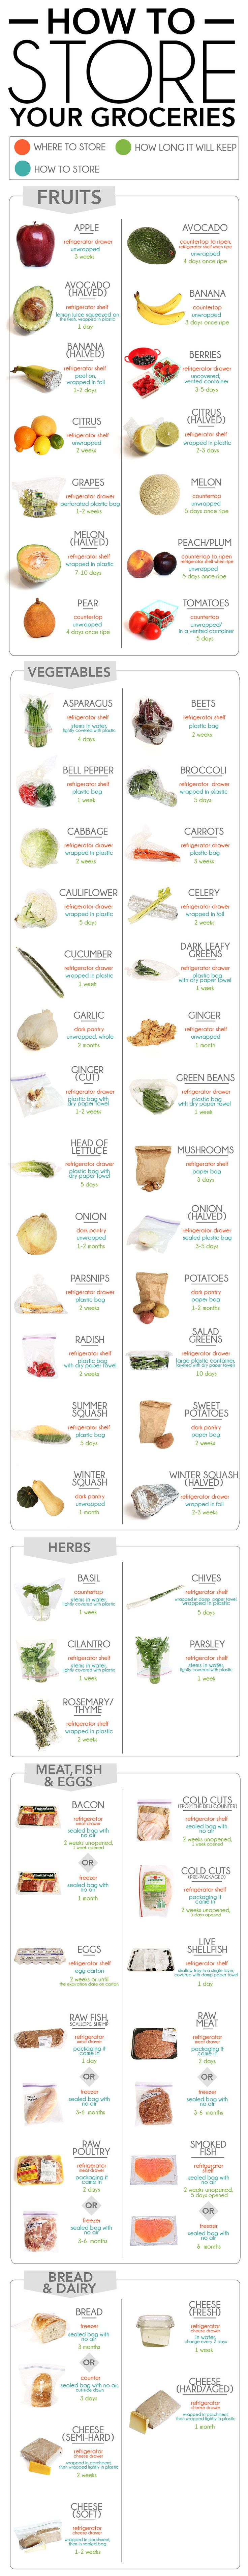 Great tips on how to store your groceries.